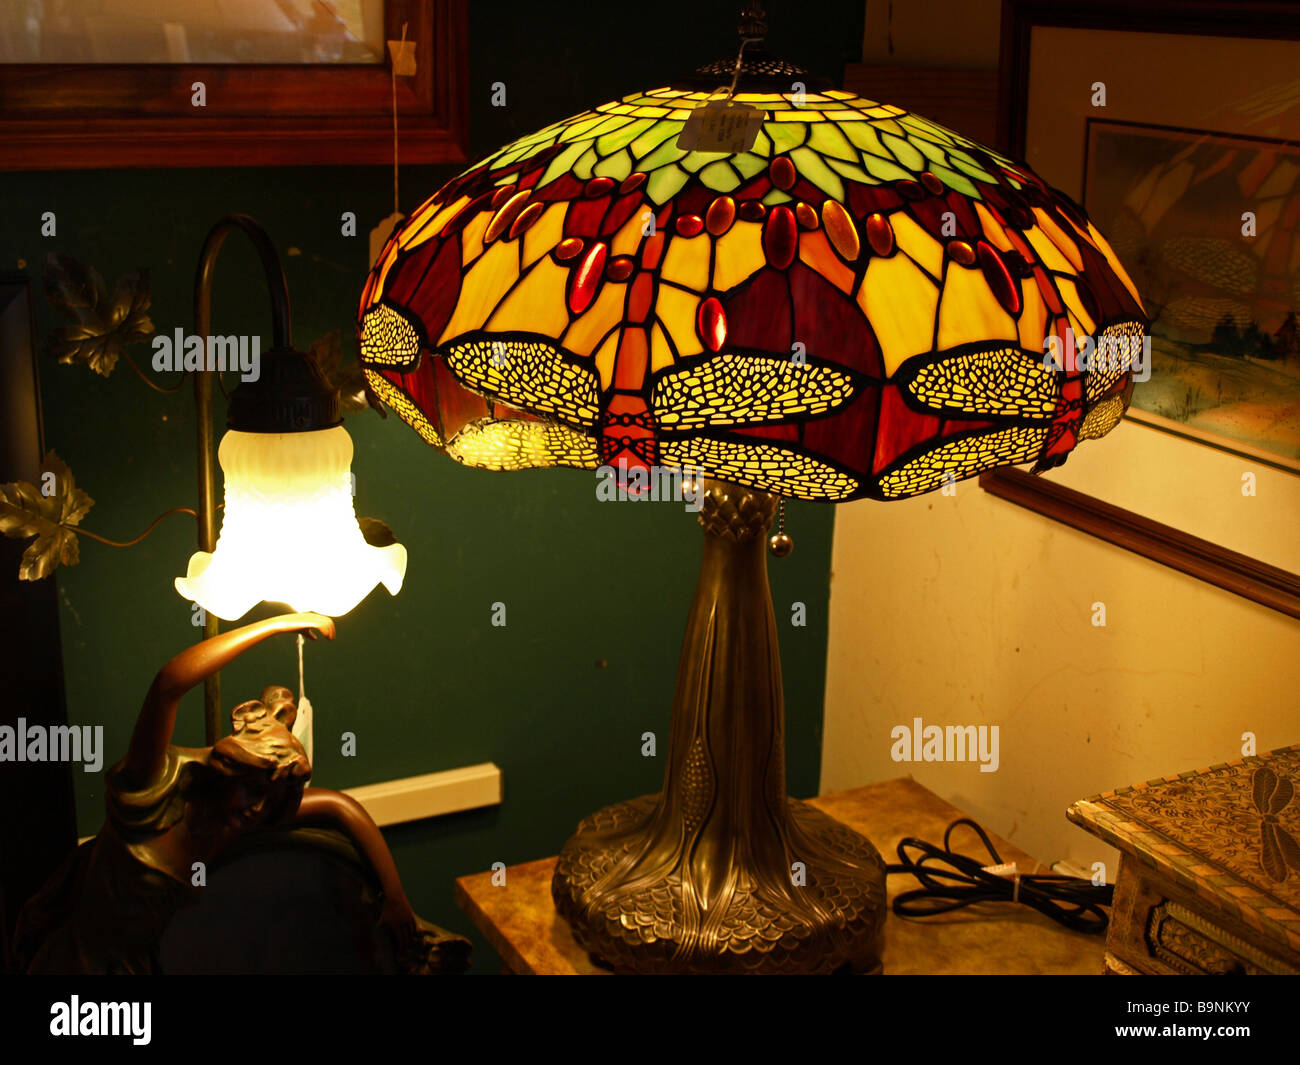 Stained Glass Lamp Shade In Art Deco Style With Greens And